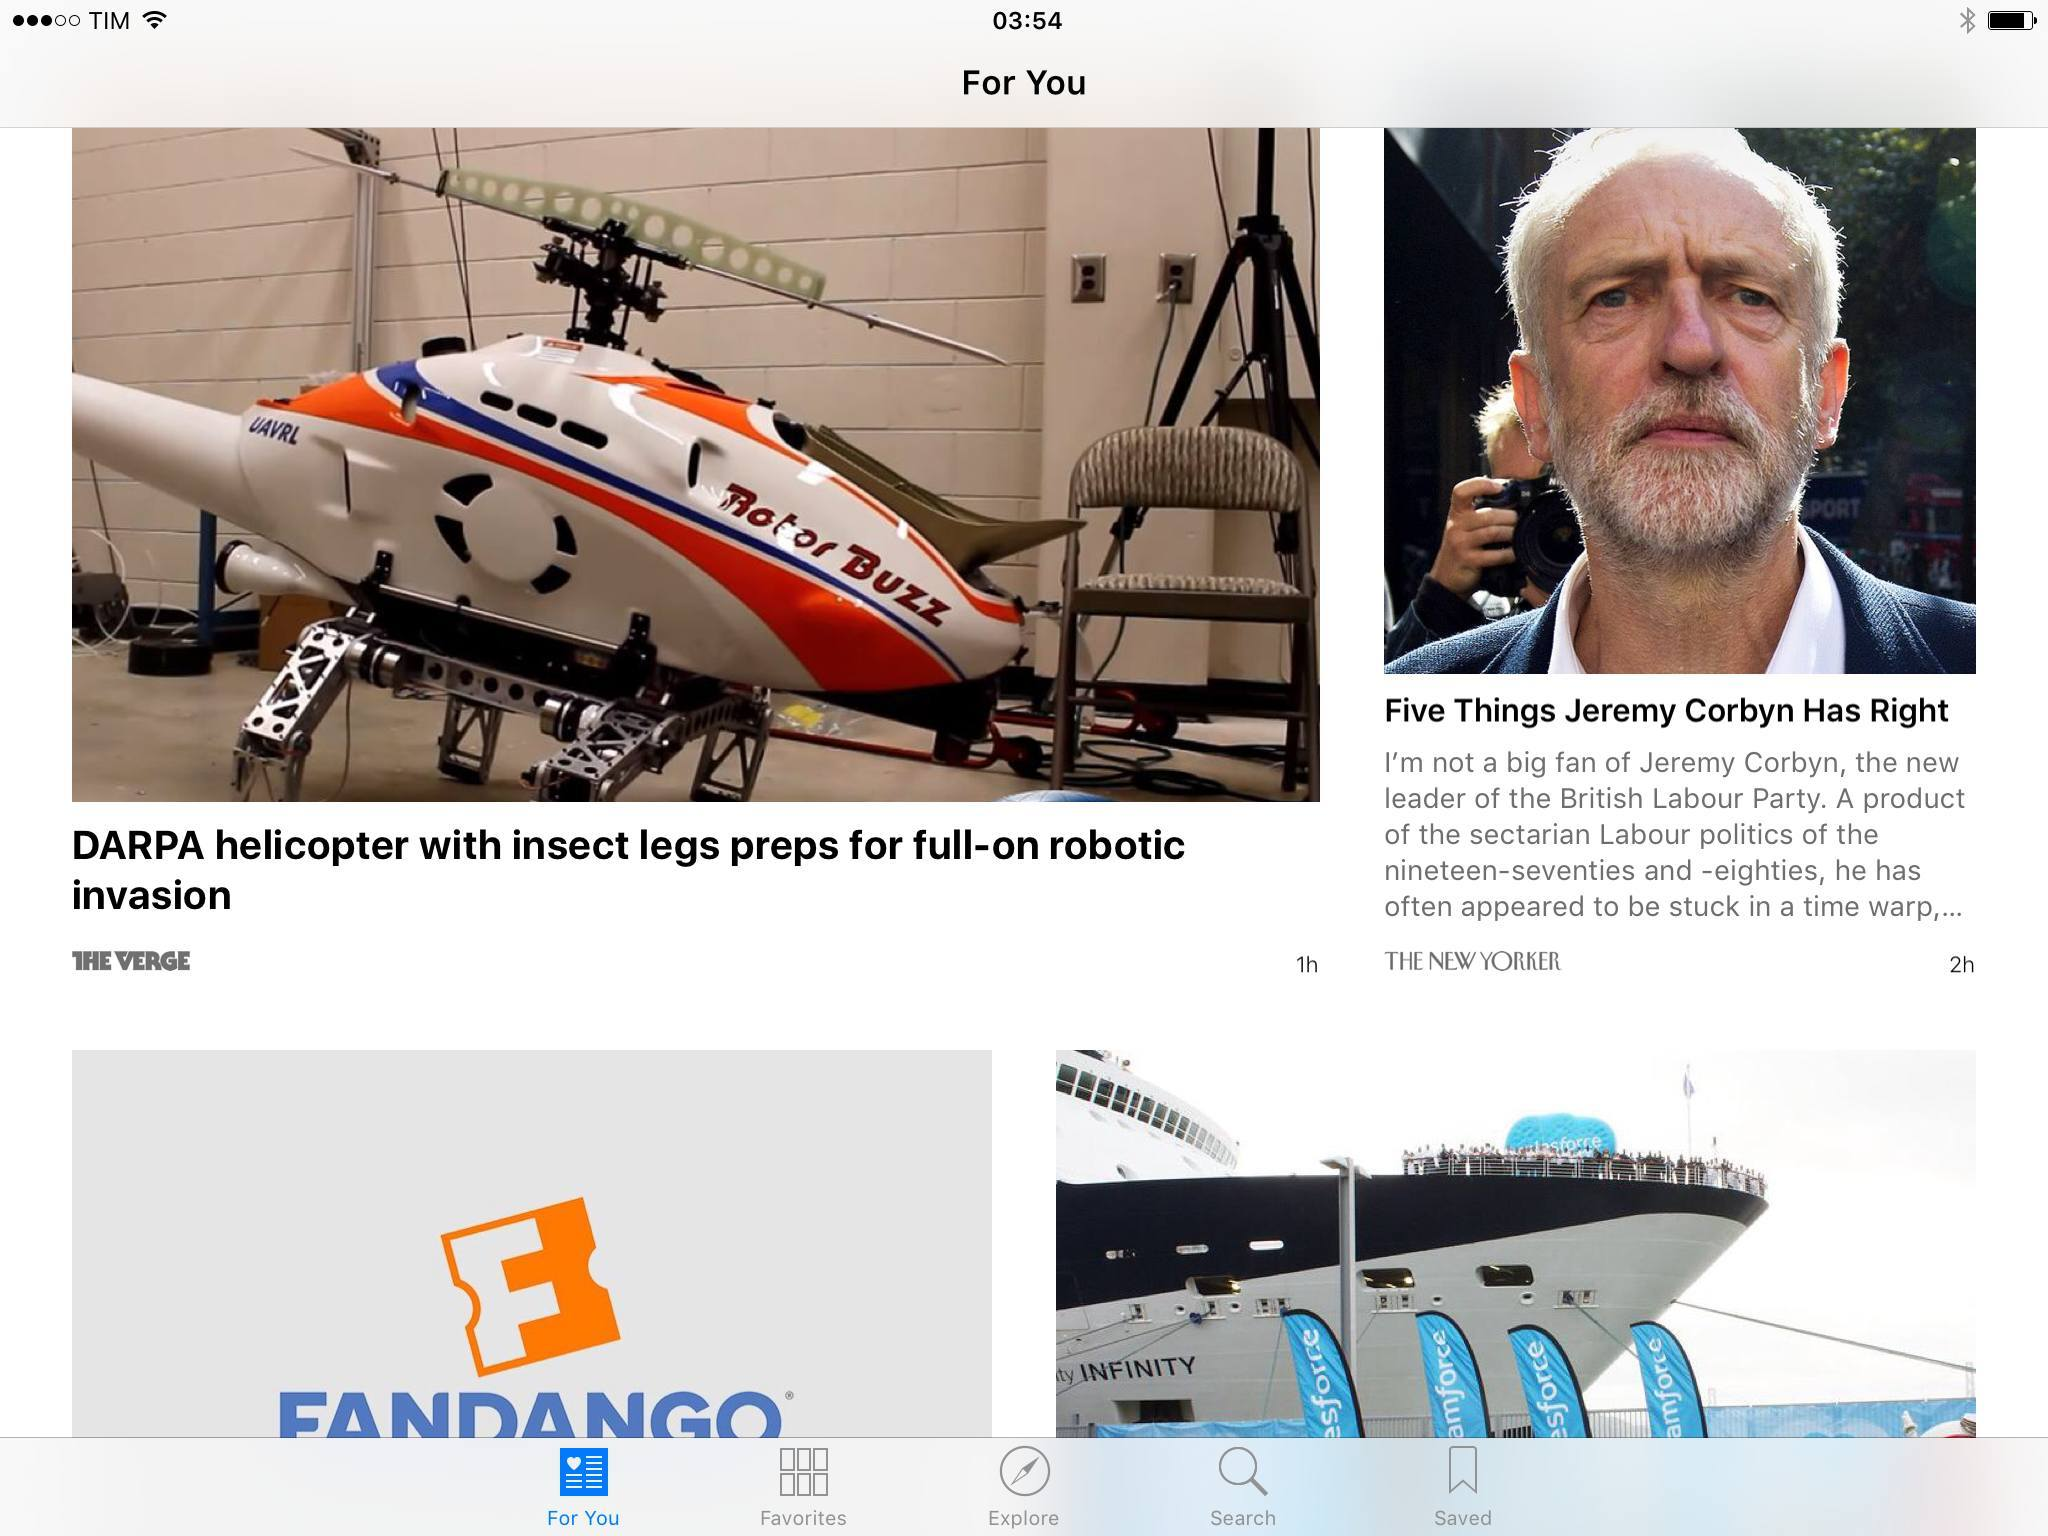 An example of the content I am recommended in Apple News.